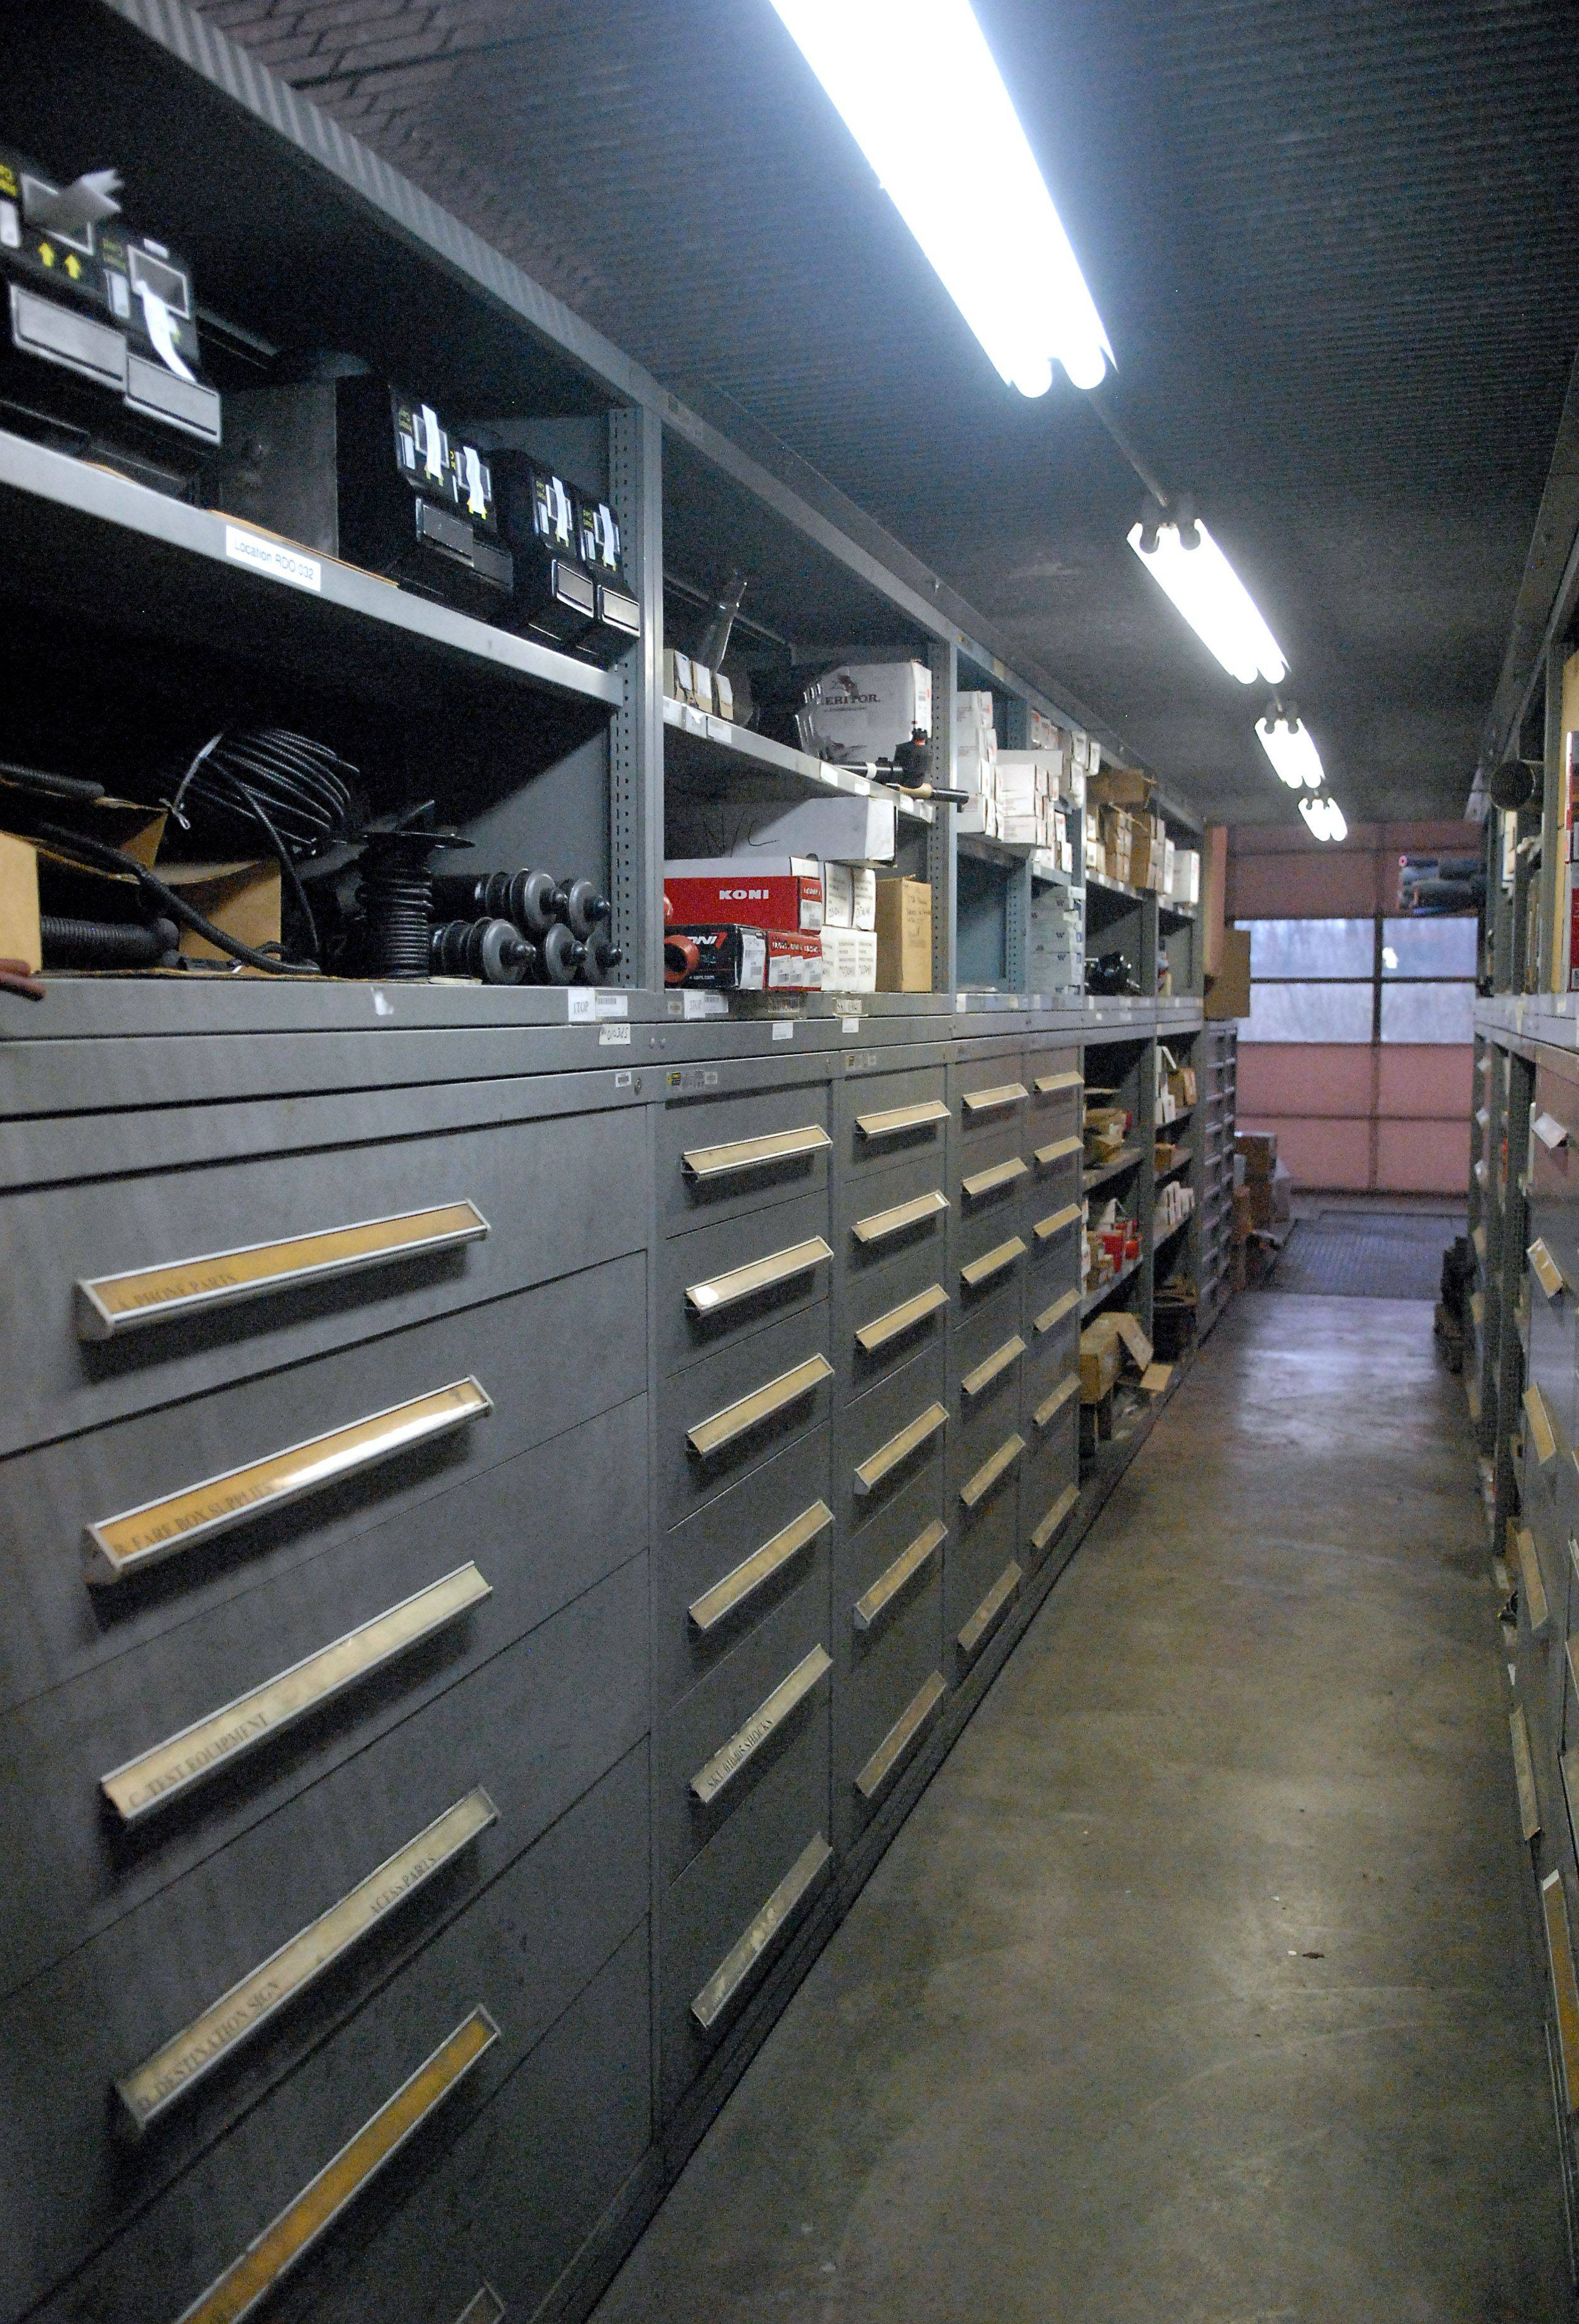 The stock room at the Elgin Pace bus garage is neatly organized. Each piece has a Pace assigned SKU number so quantities are tracked and can be easily found on the shelf or reordered when needed.